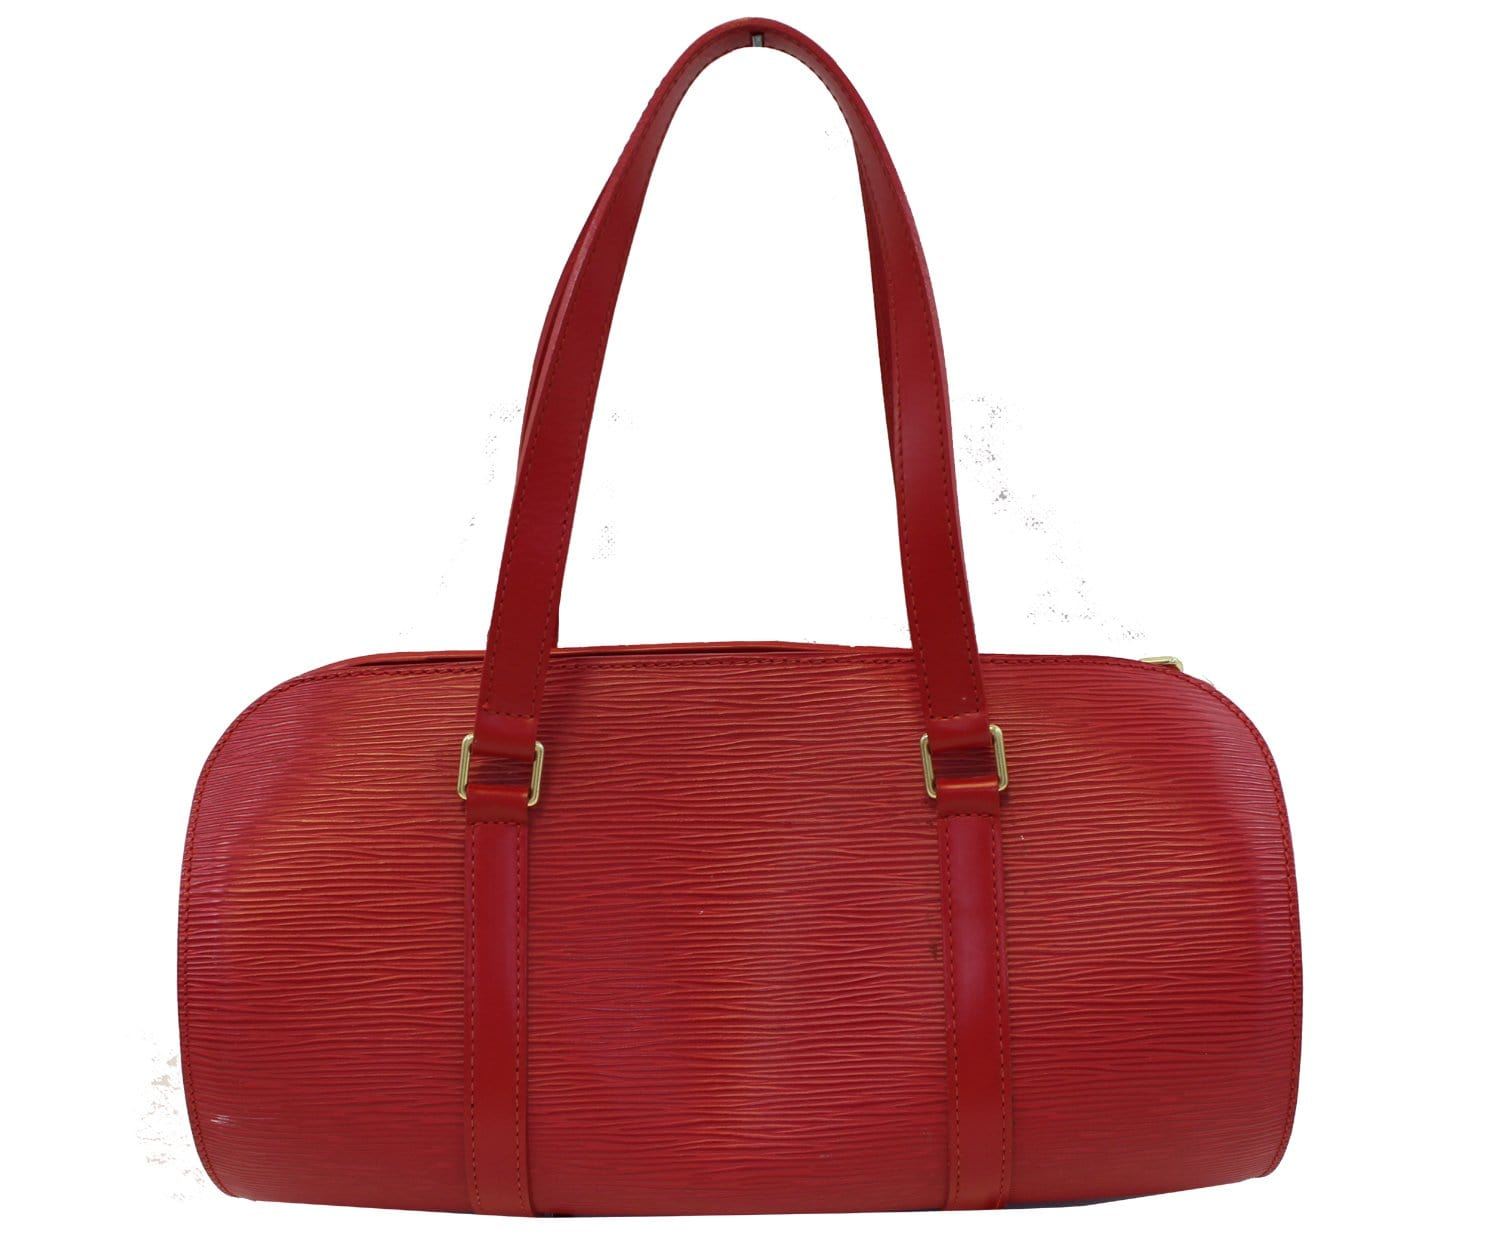 Authentic LOUIS VUITTON Epi Leather Red Papillon 26 Bag TT1697 ... 14f70b3fbda43